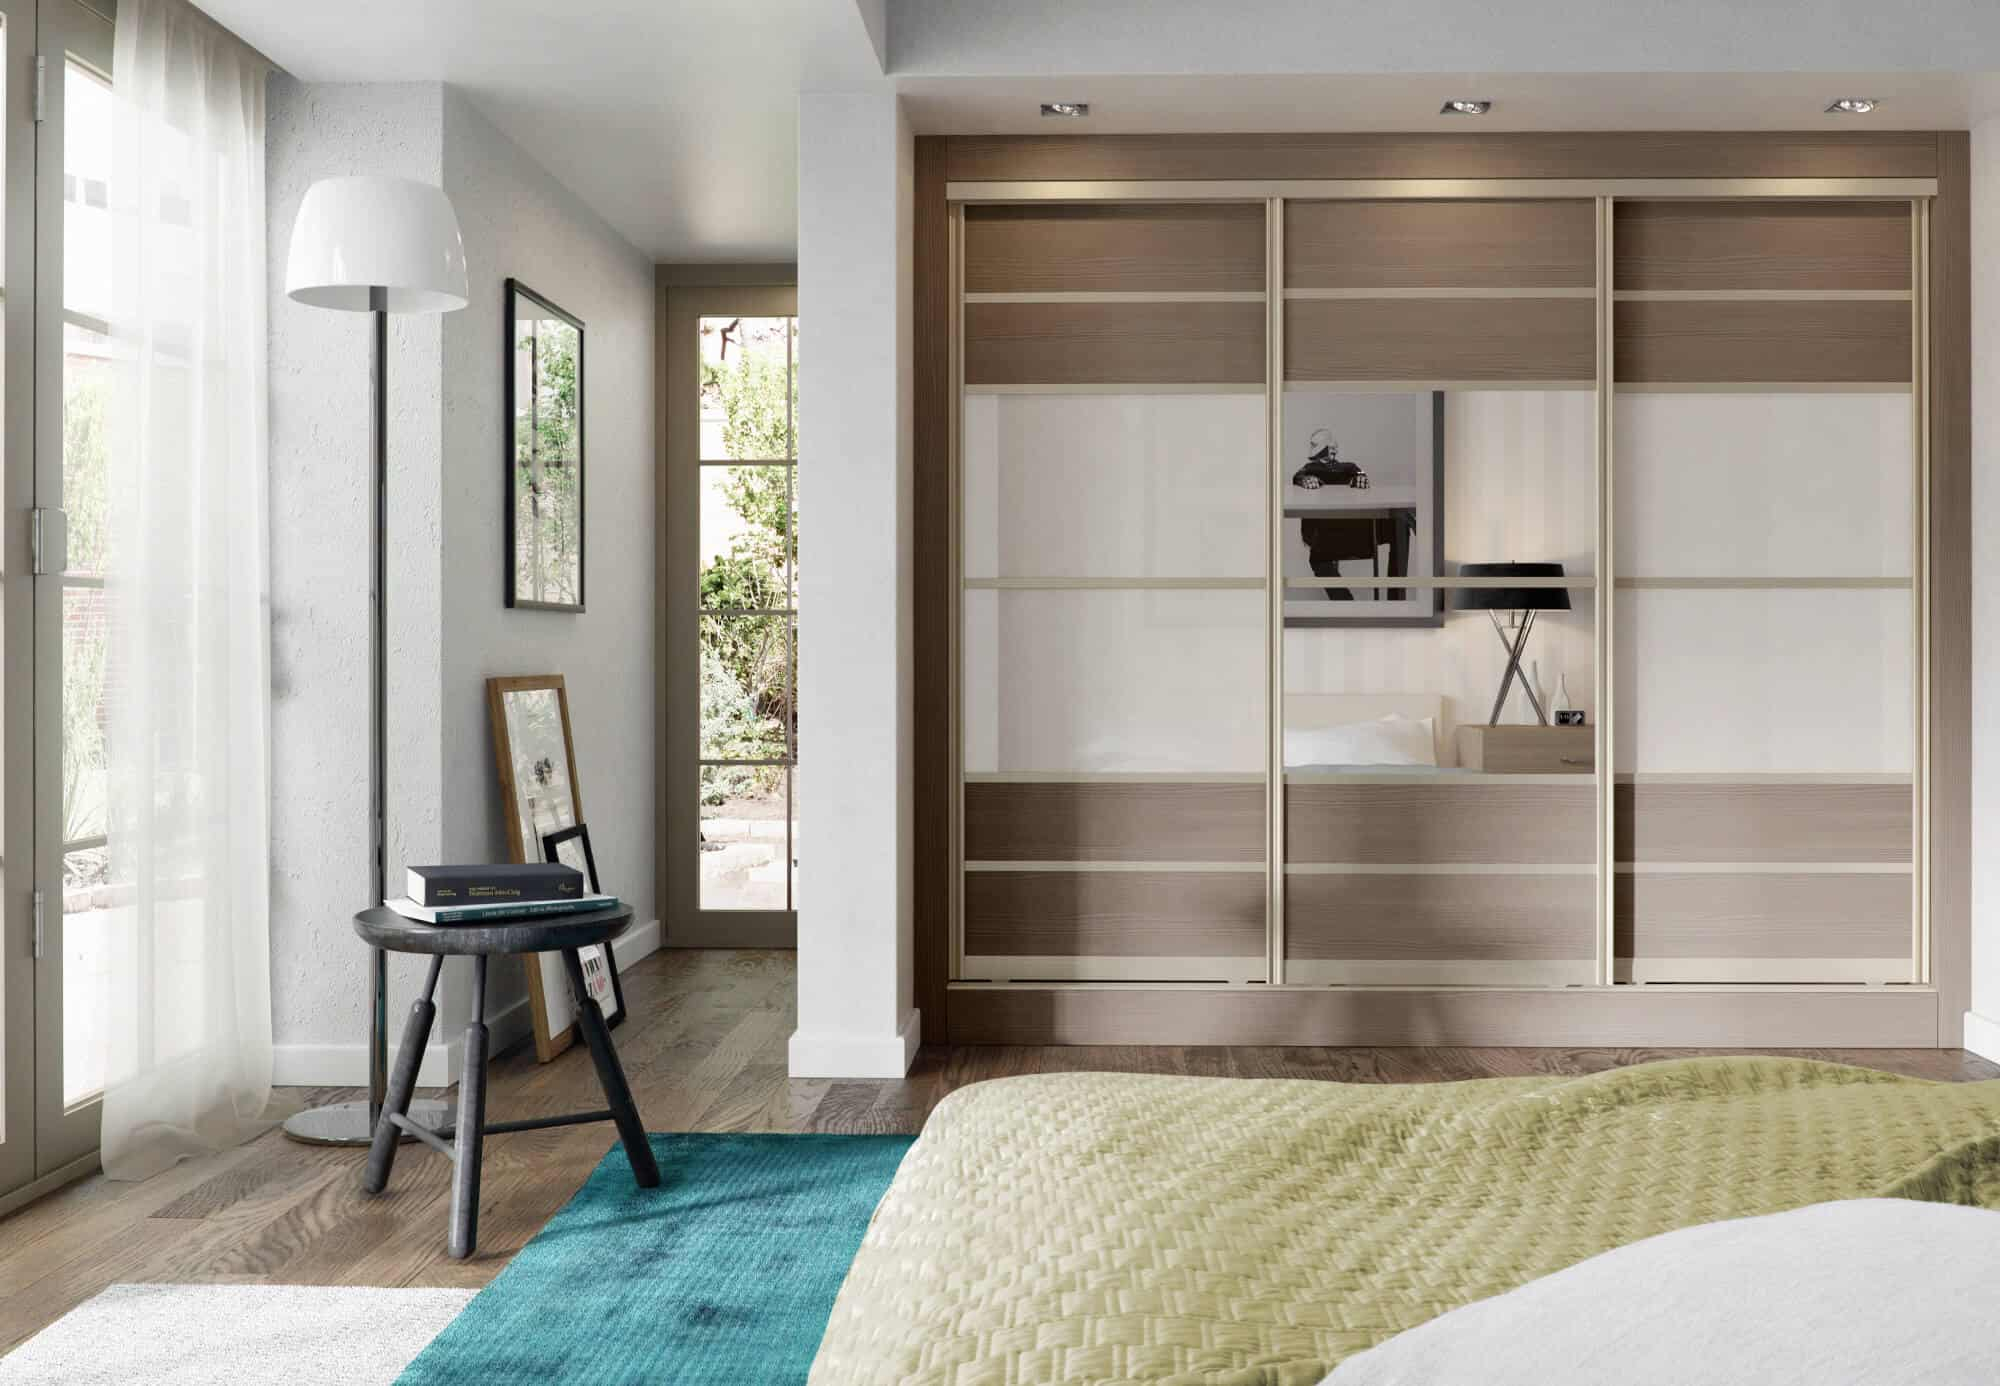 Minimalist bedroom design with sliding door wardrobes